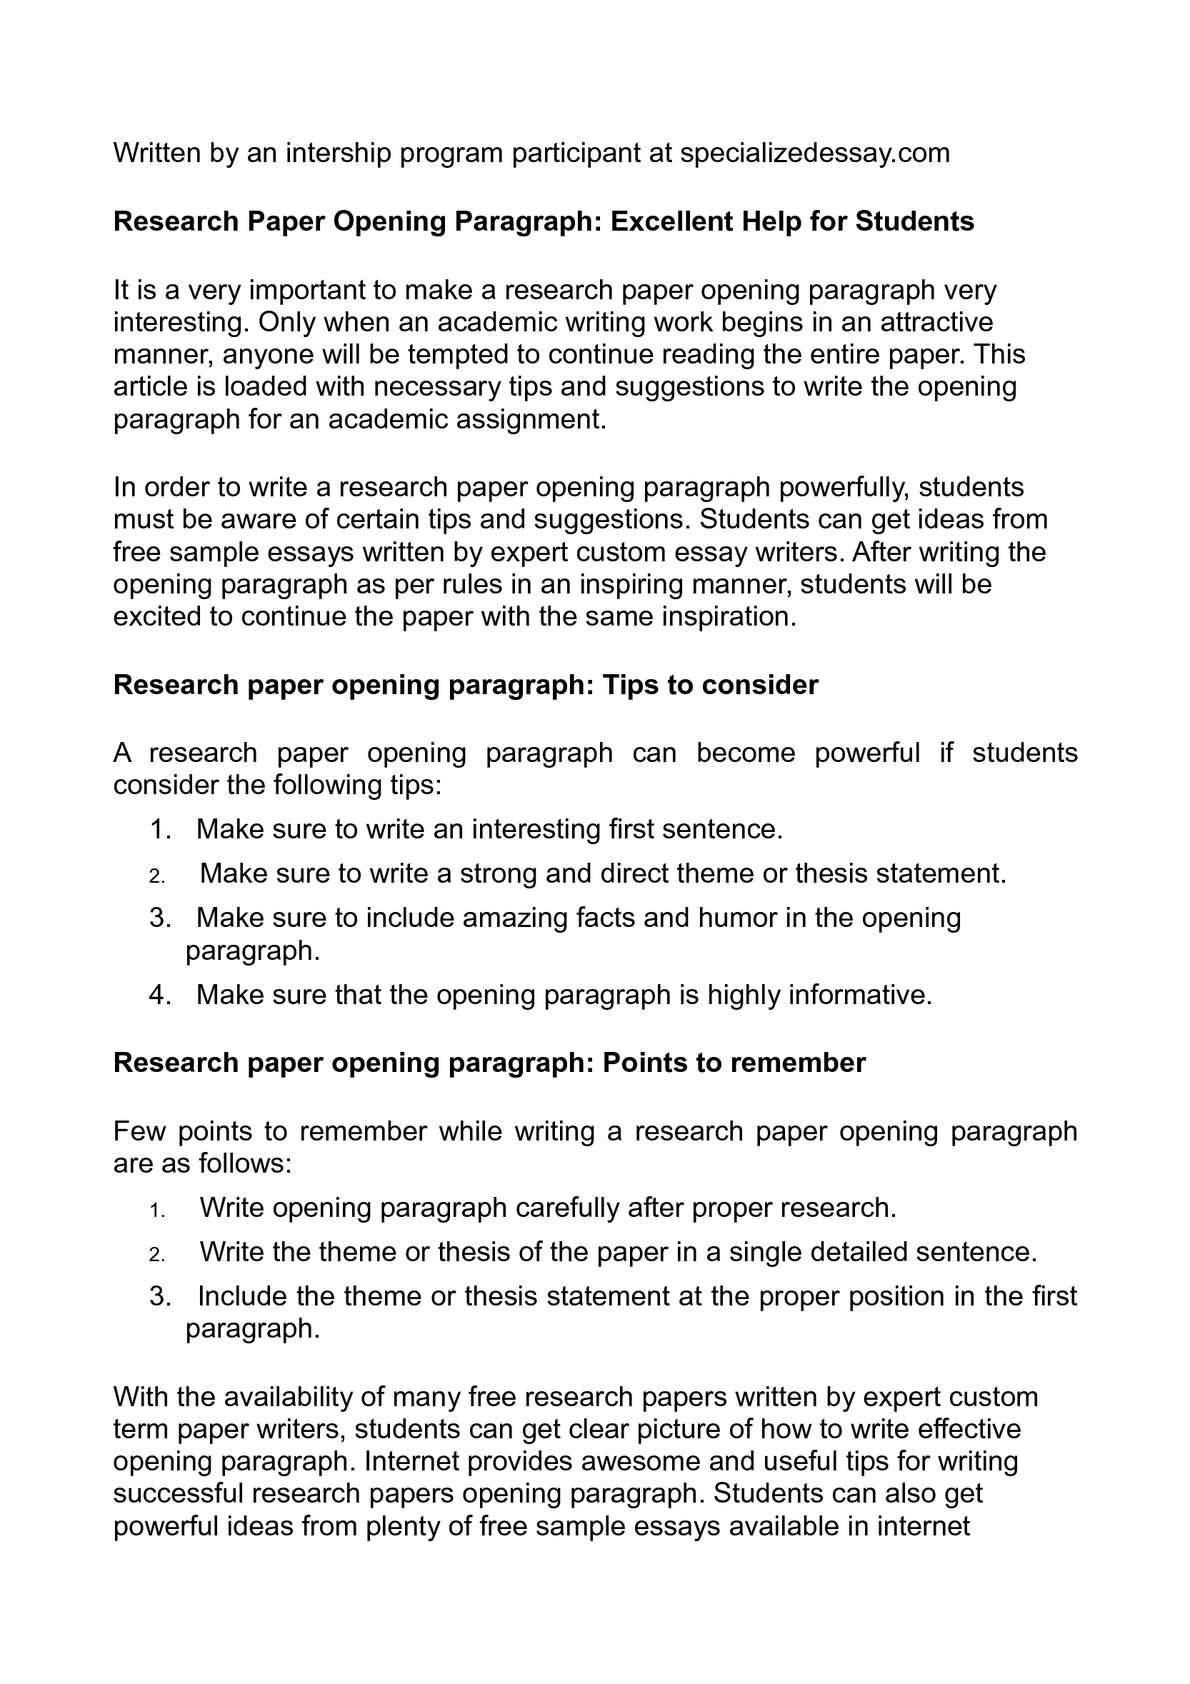 005 Research Paper P1 Tips For Wondrous Papers Good Effective Writing Full